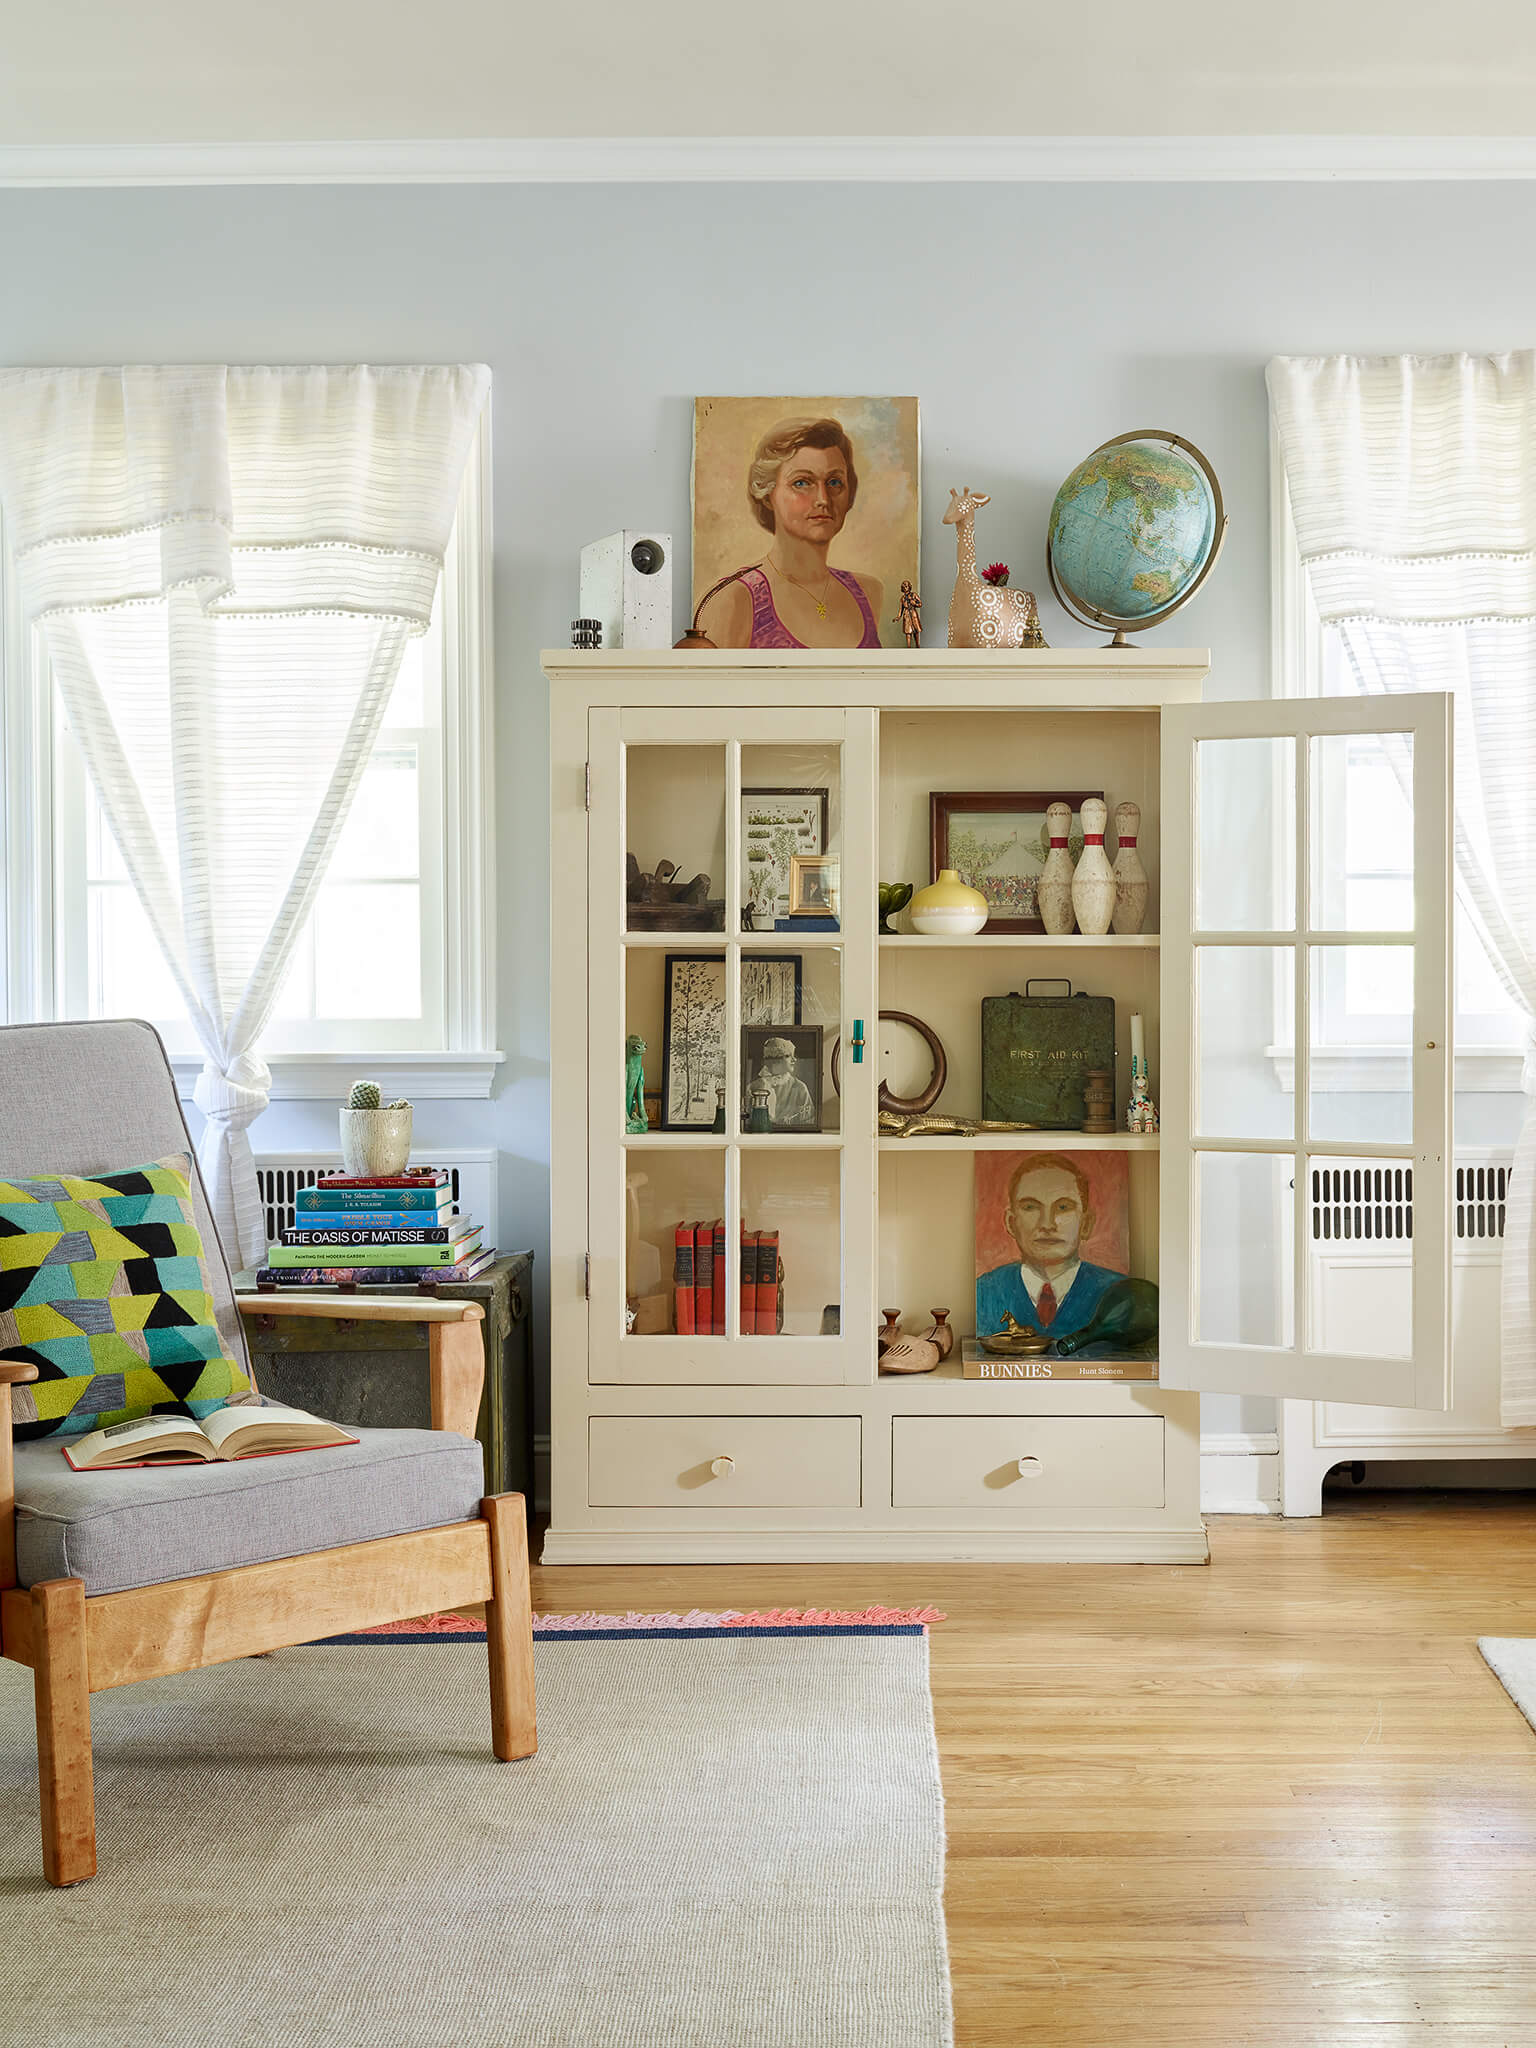 At Home with Michellle Gage